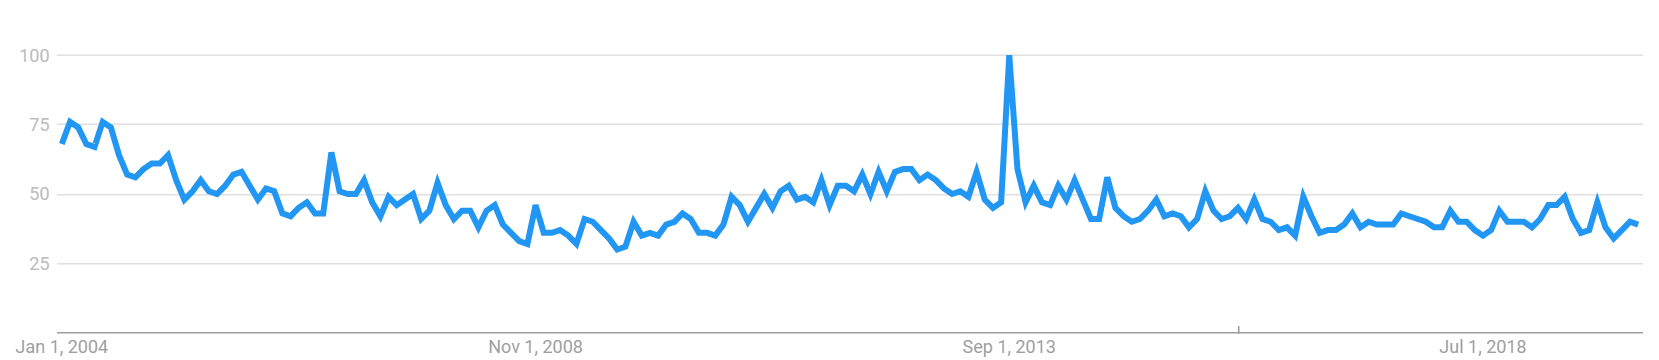 NTT Dococo Google Trends.png